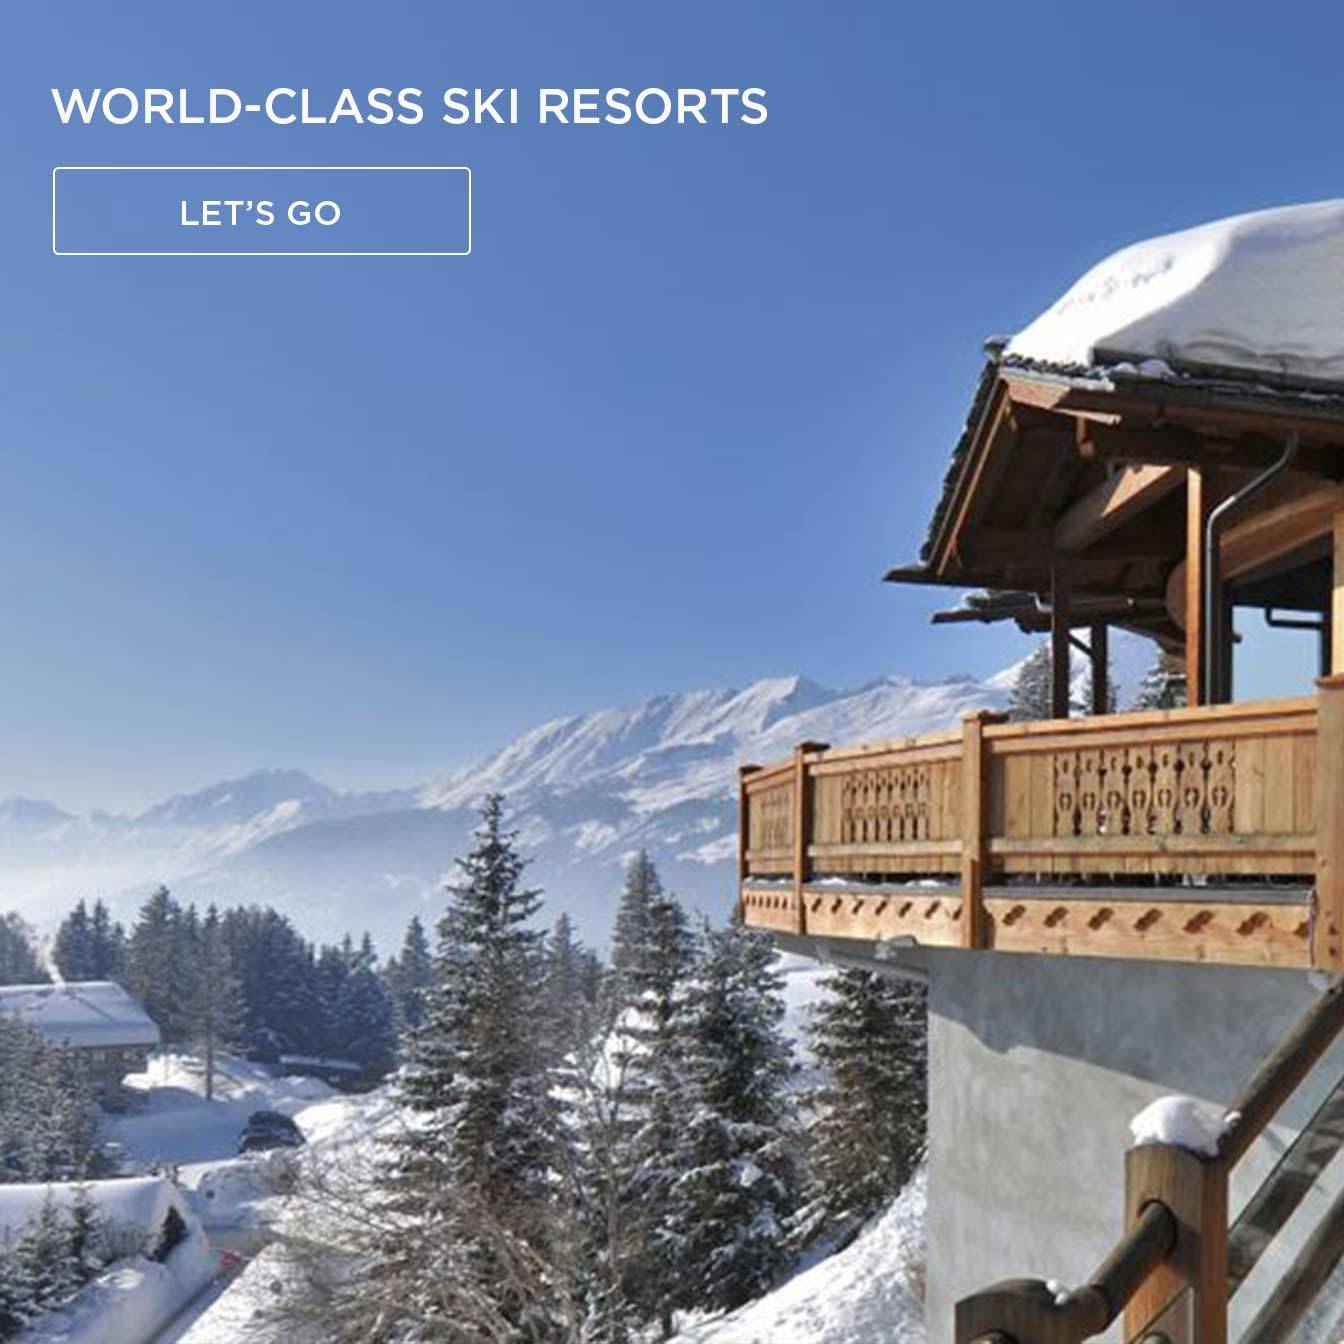 View the best ski resorts and hotels